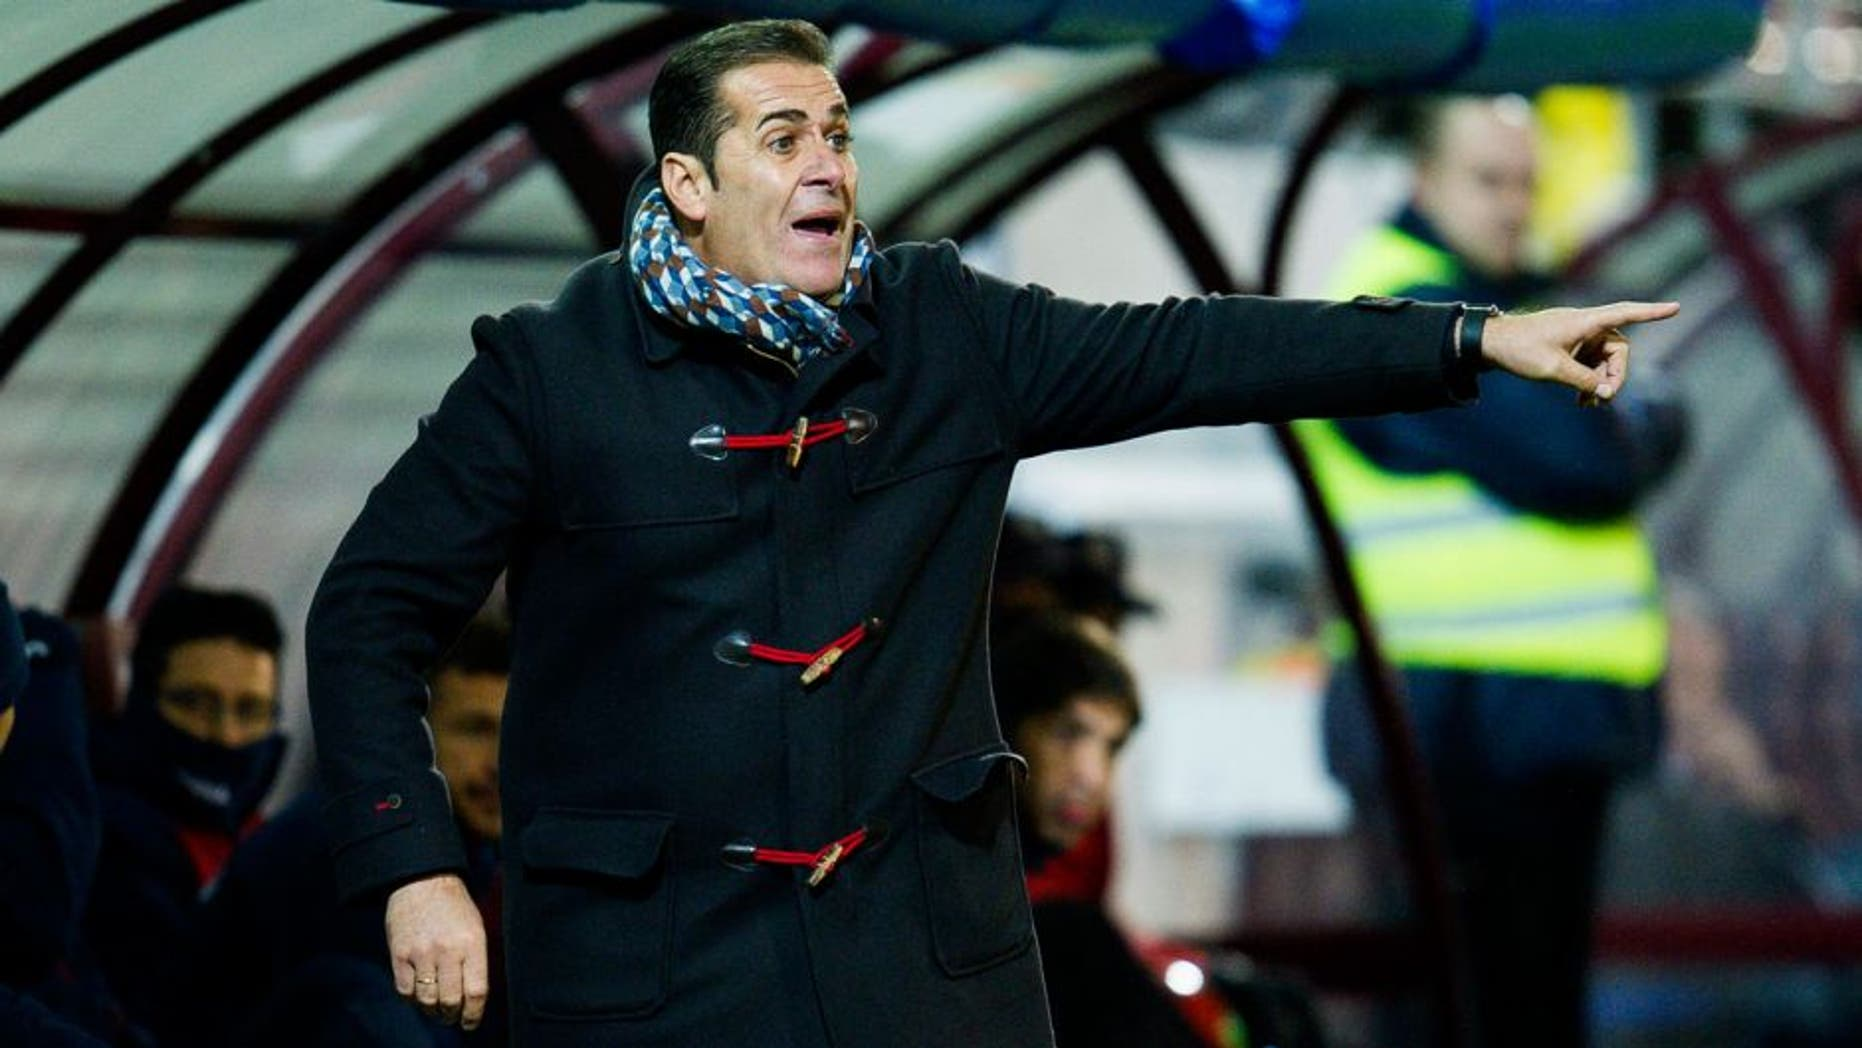 EIBAR, SPAIN - JANUARY 18: Head coach Jose Ramon Sandoval of Granada CF reacts during the La Liga match between SD Eibar and Granada CF at Ipurua Municipal Stadium on January 18, 2016 in Eibar, Spain. (Photo by Juan Manuel Serrano Arce/Getty Images)